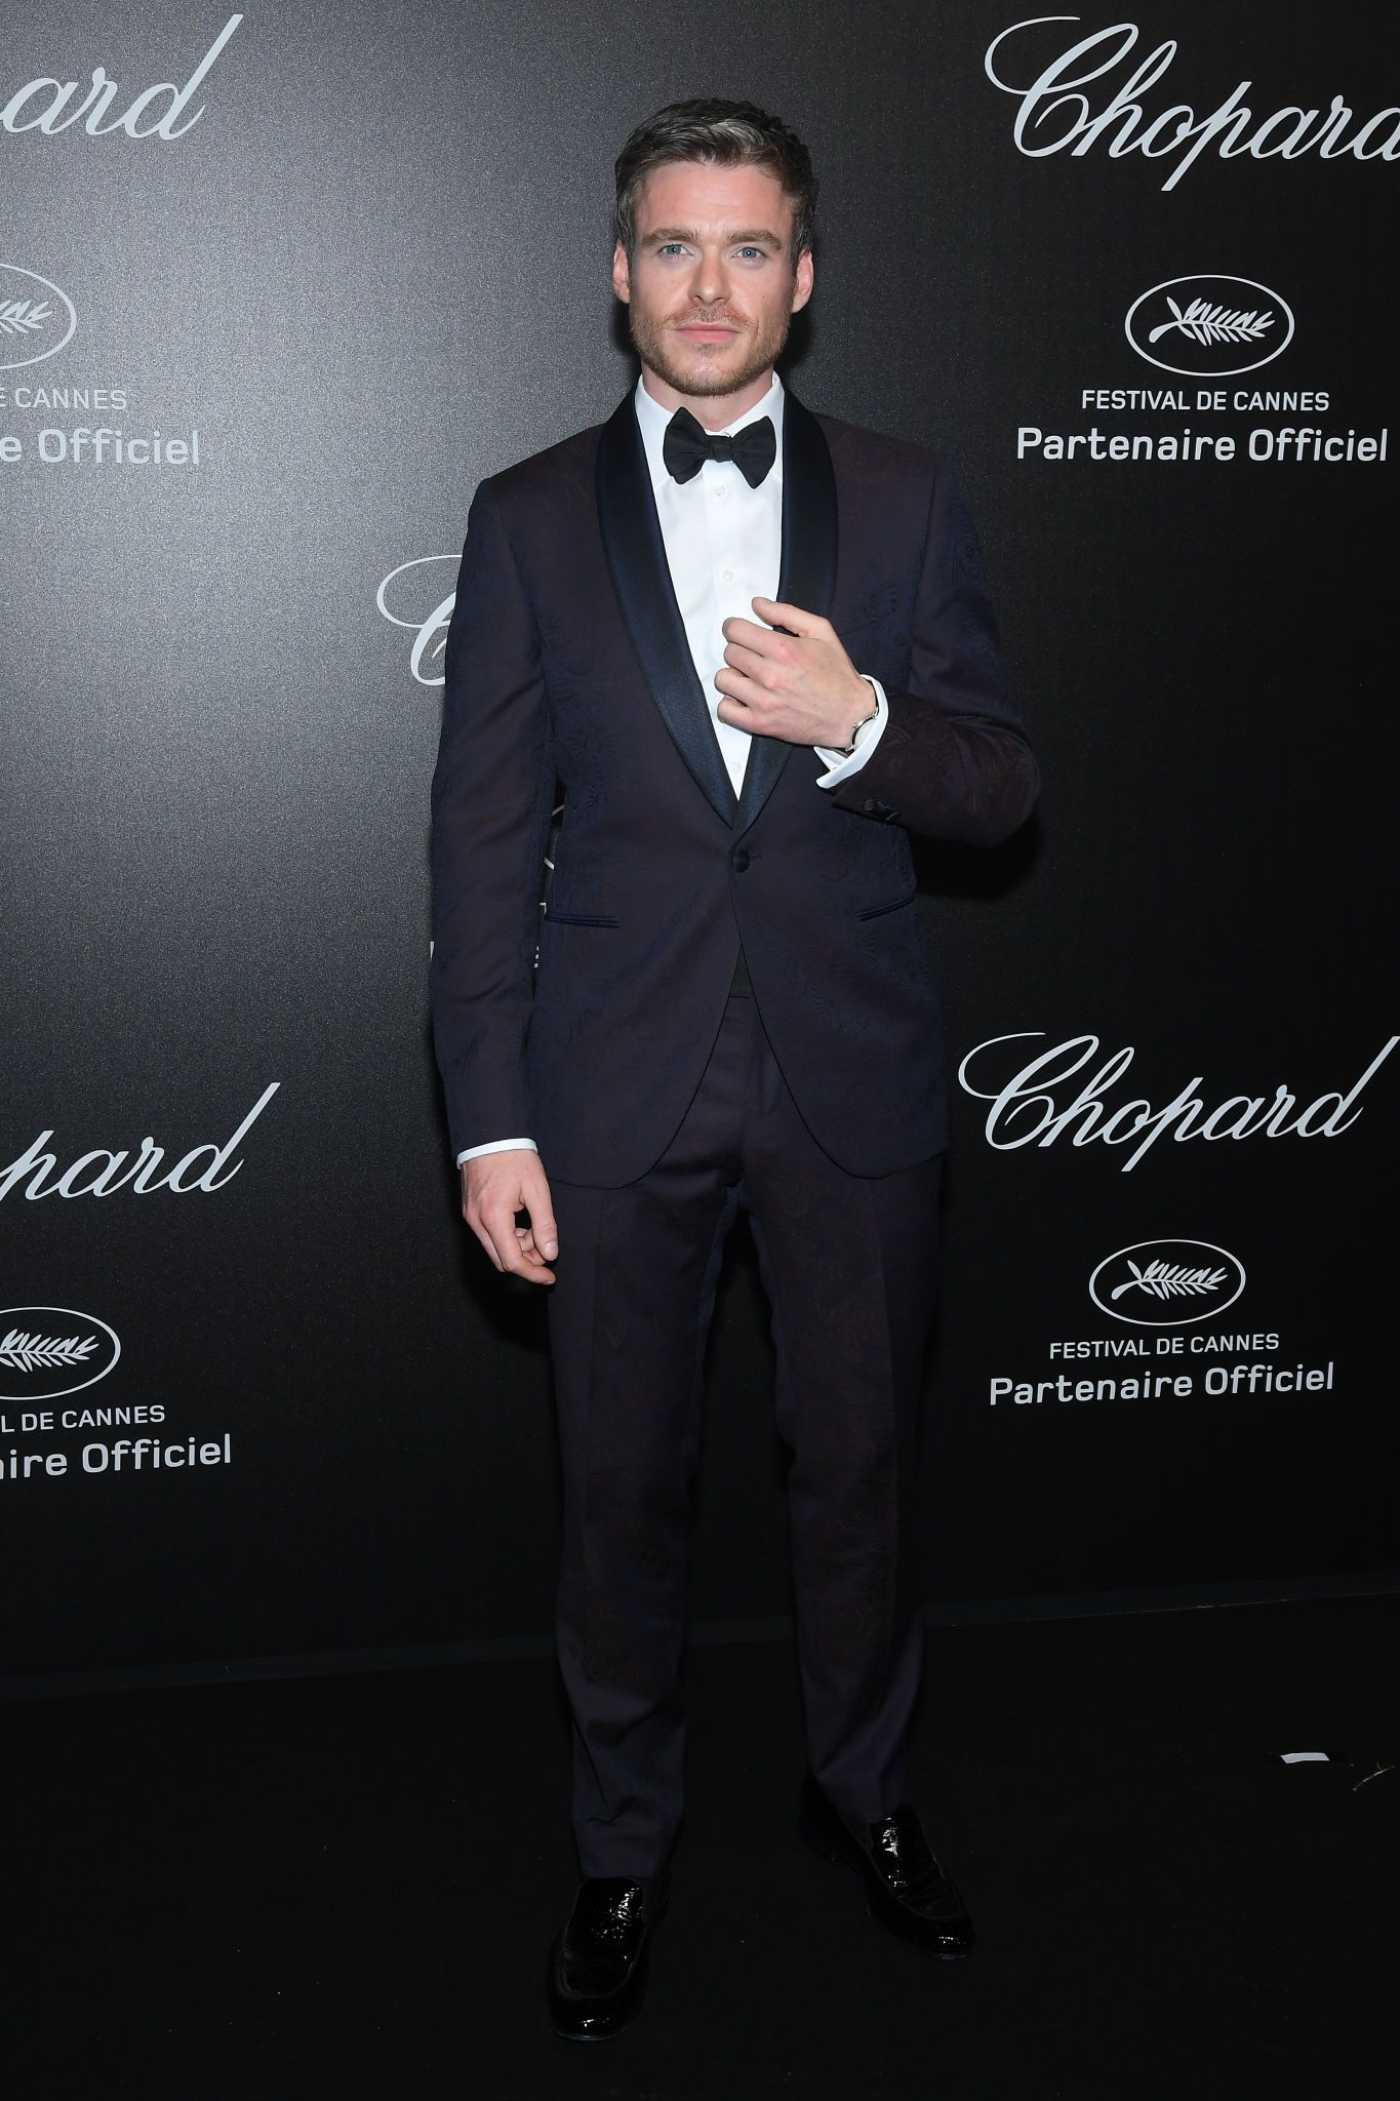 Richard Madden Attends Chopard Love Night Photocall During the 72nd Cannes Film Festival in Cannes 05/17/2019